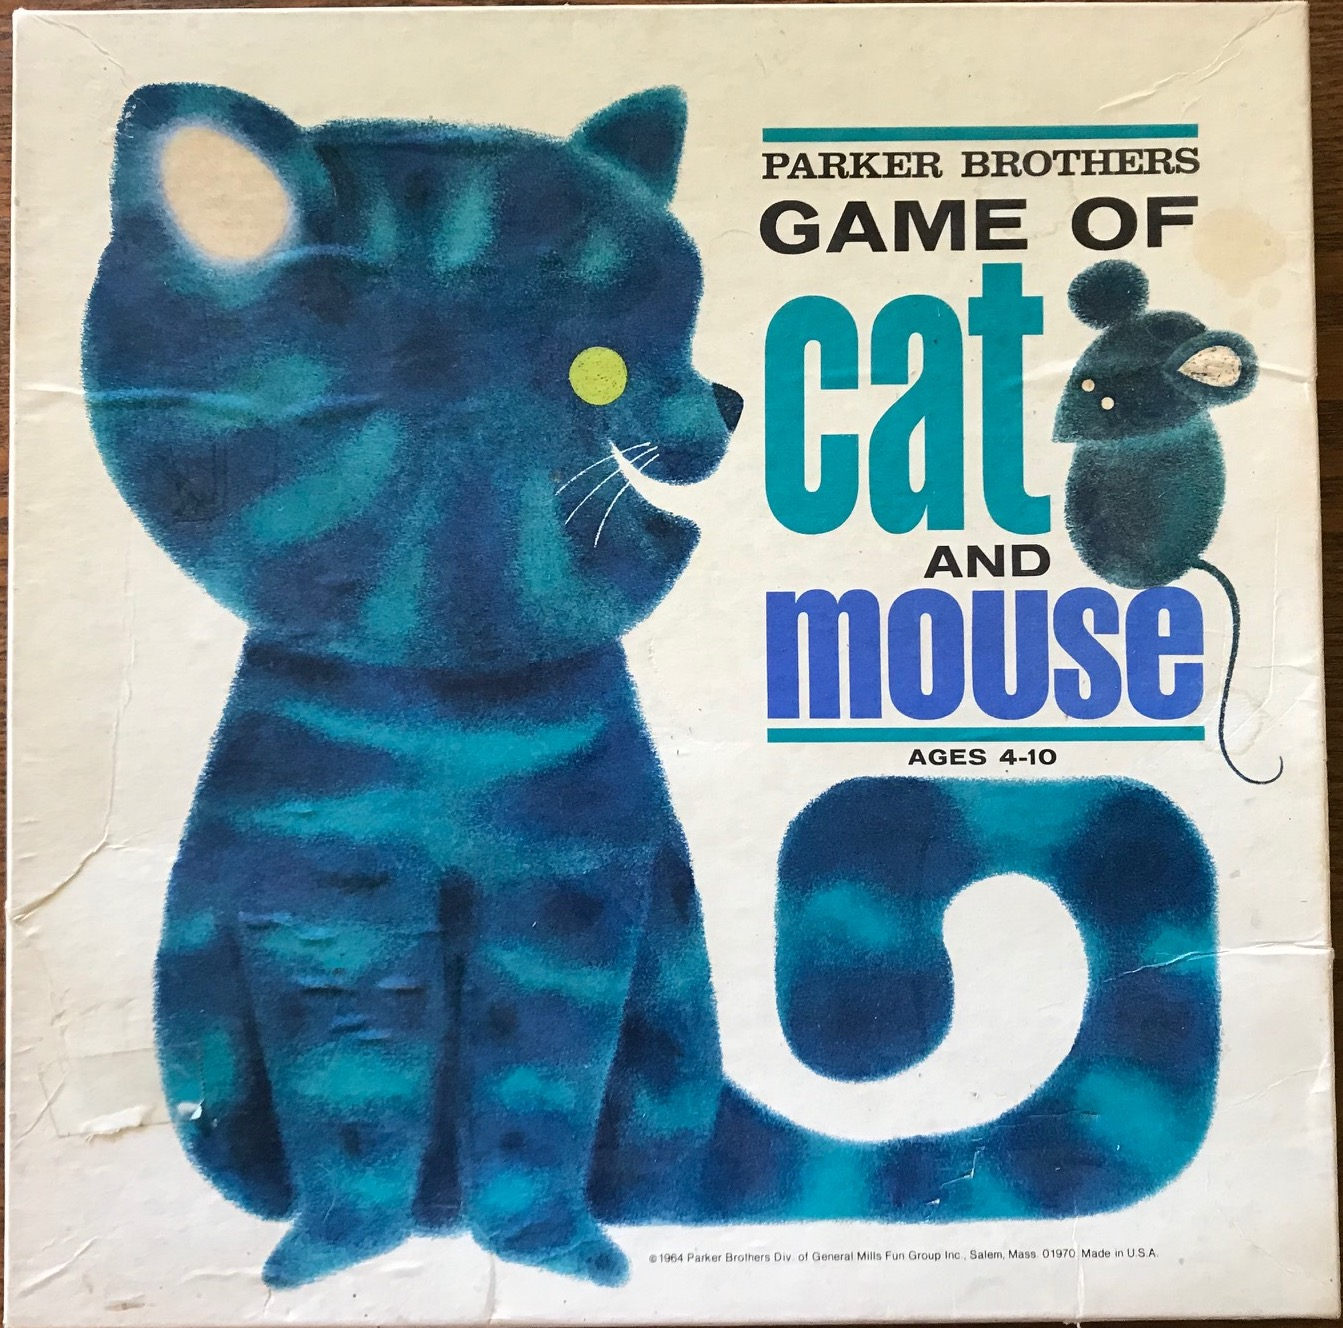 Cover has a blue kitty with the title on top of its curved tail